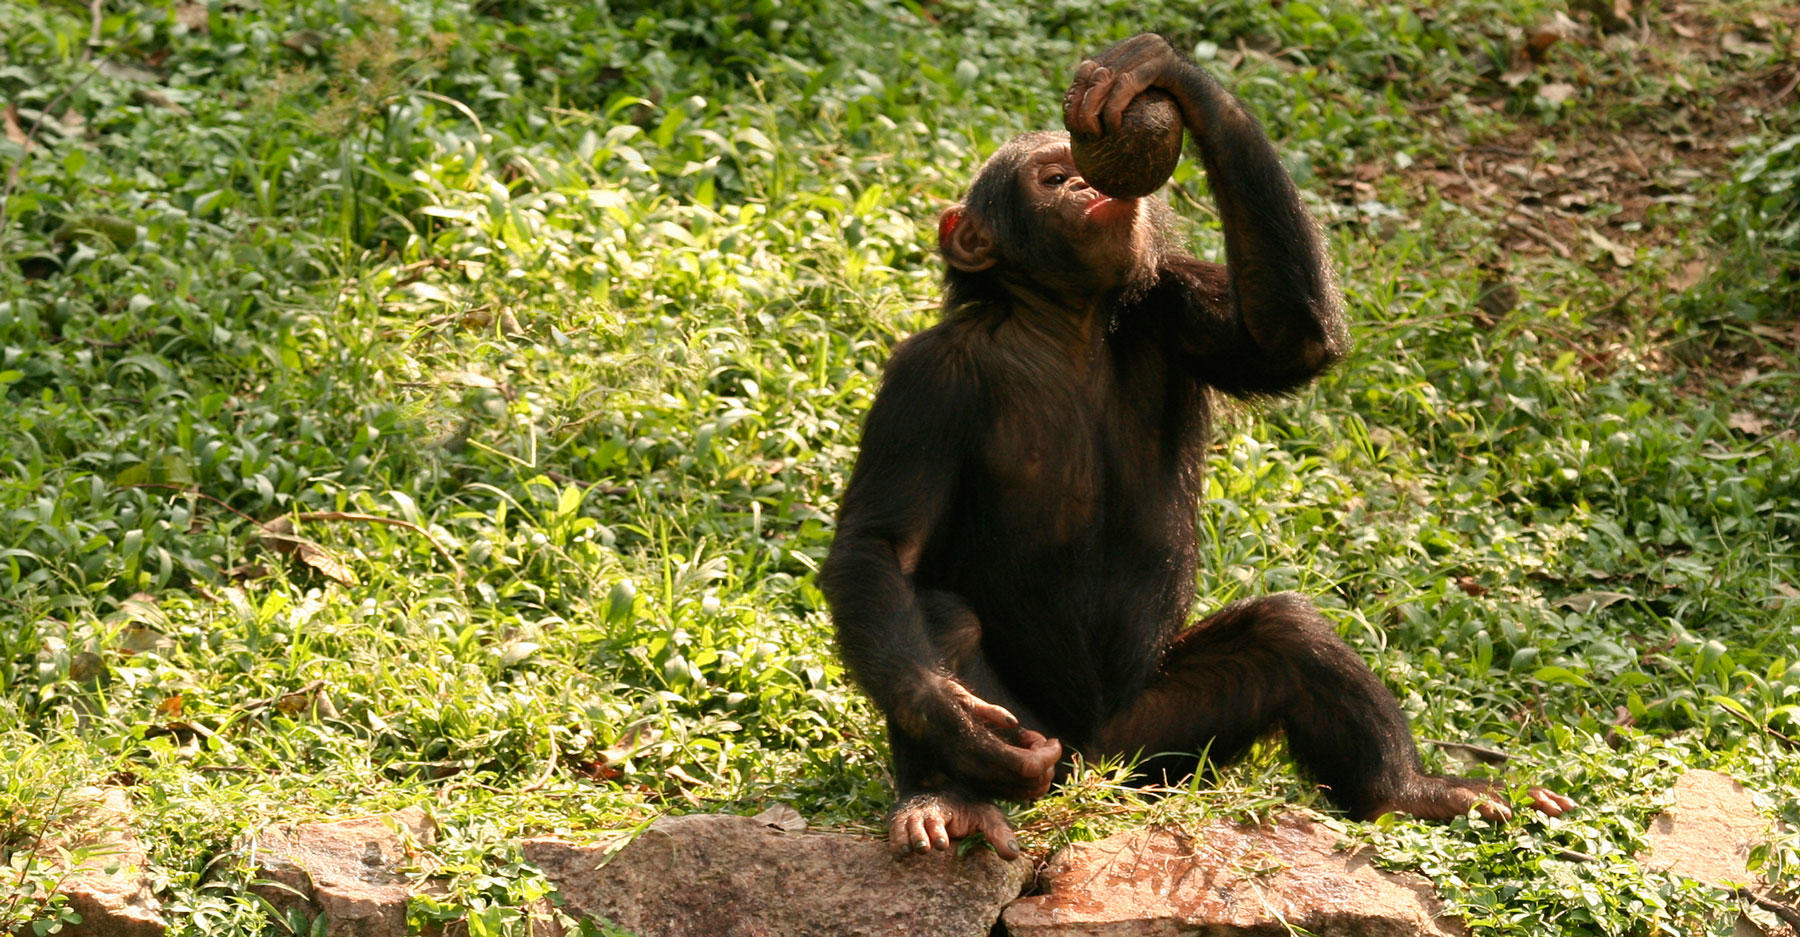 VIDEO - Chimps Found Ingesting Fermented Sap, Get Drunk